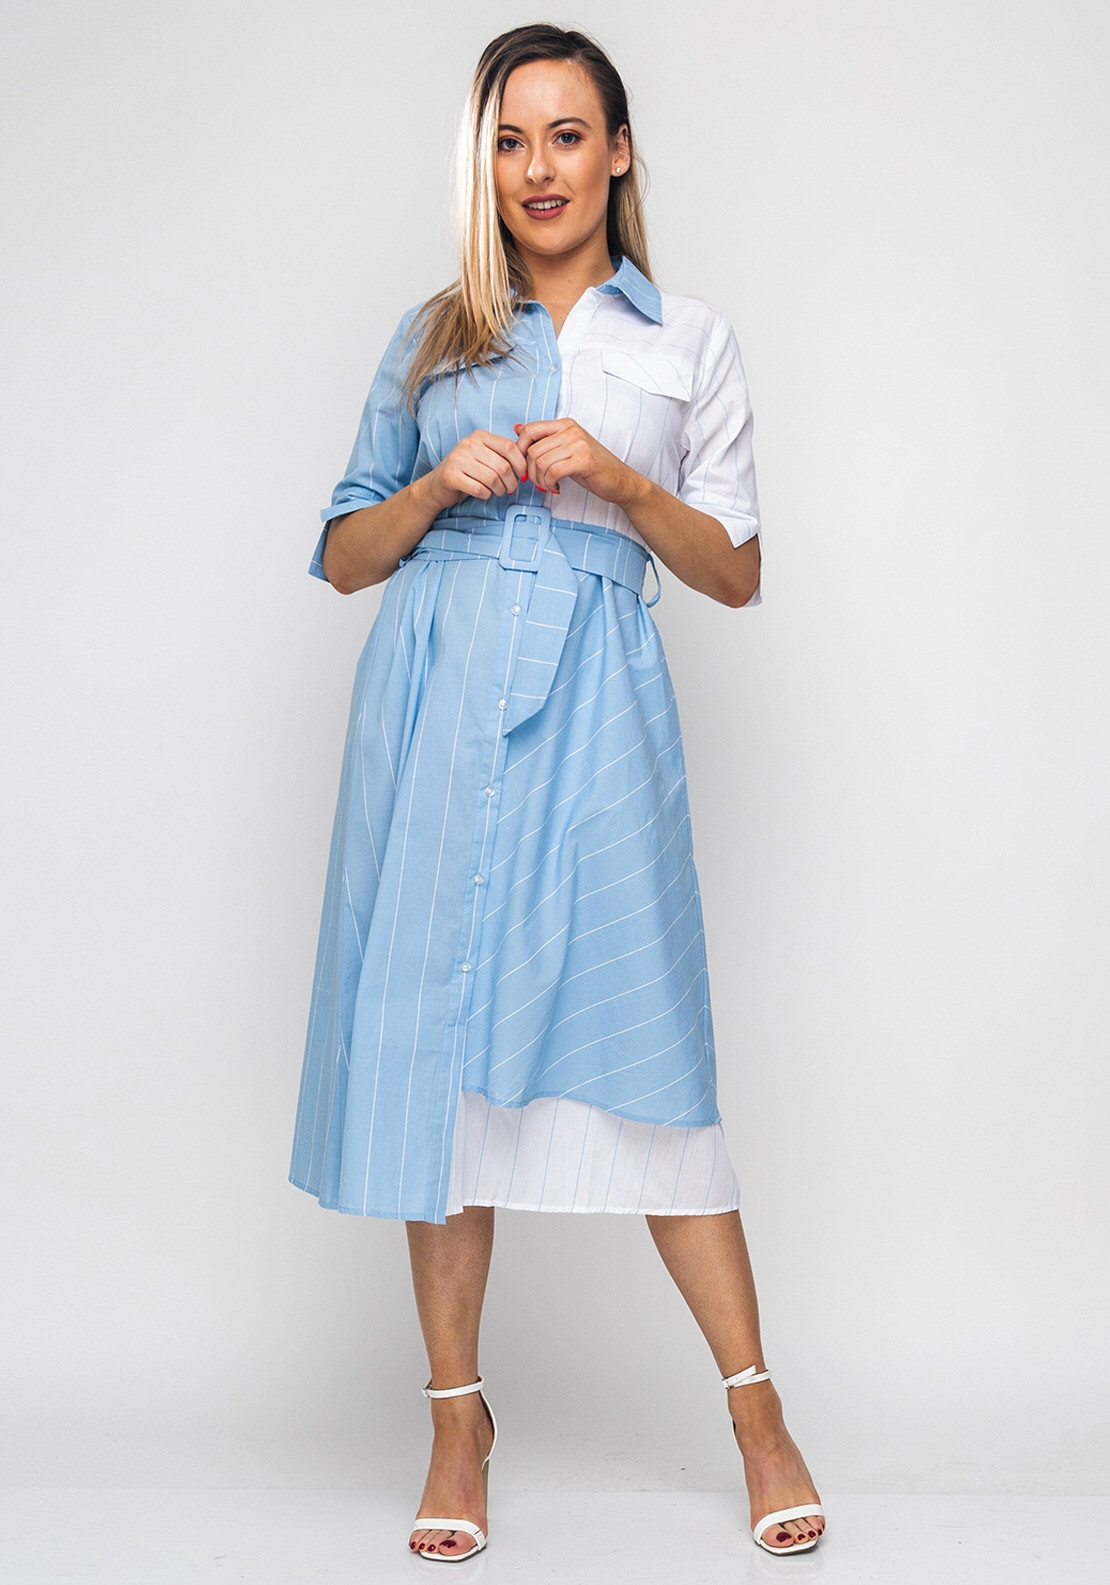 e6fe4cece468 Seventy1 Striped Cotton Midi Dress, Blue. Be the first to review this  product